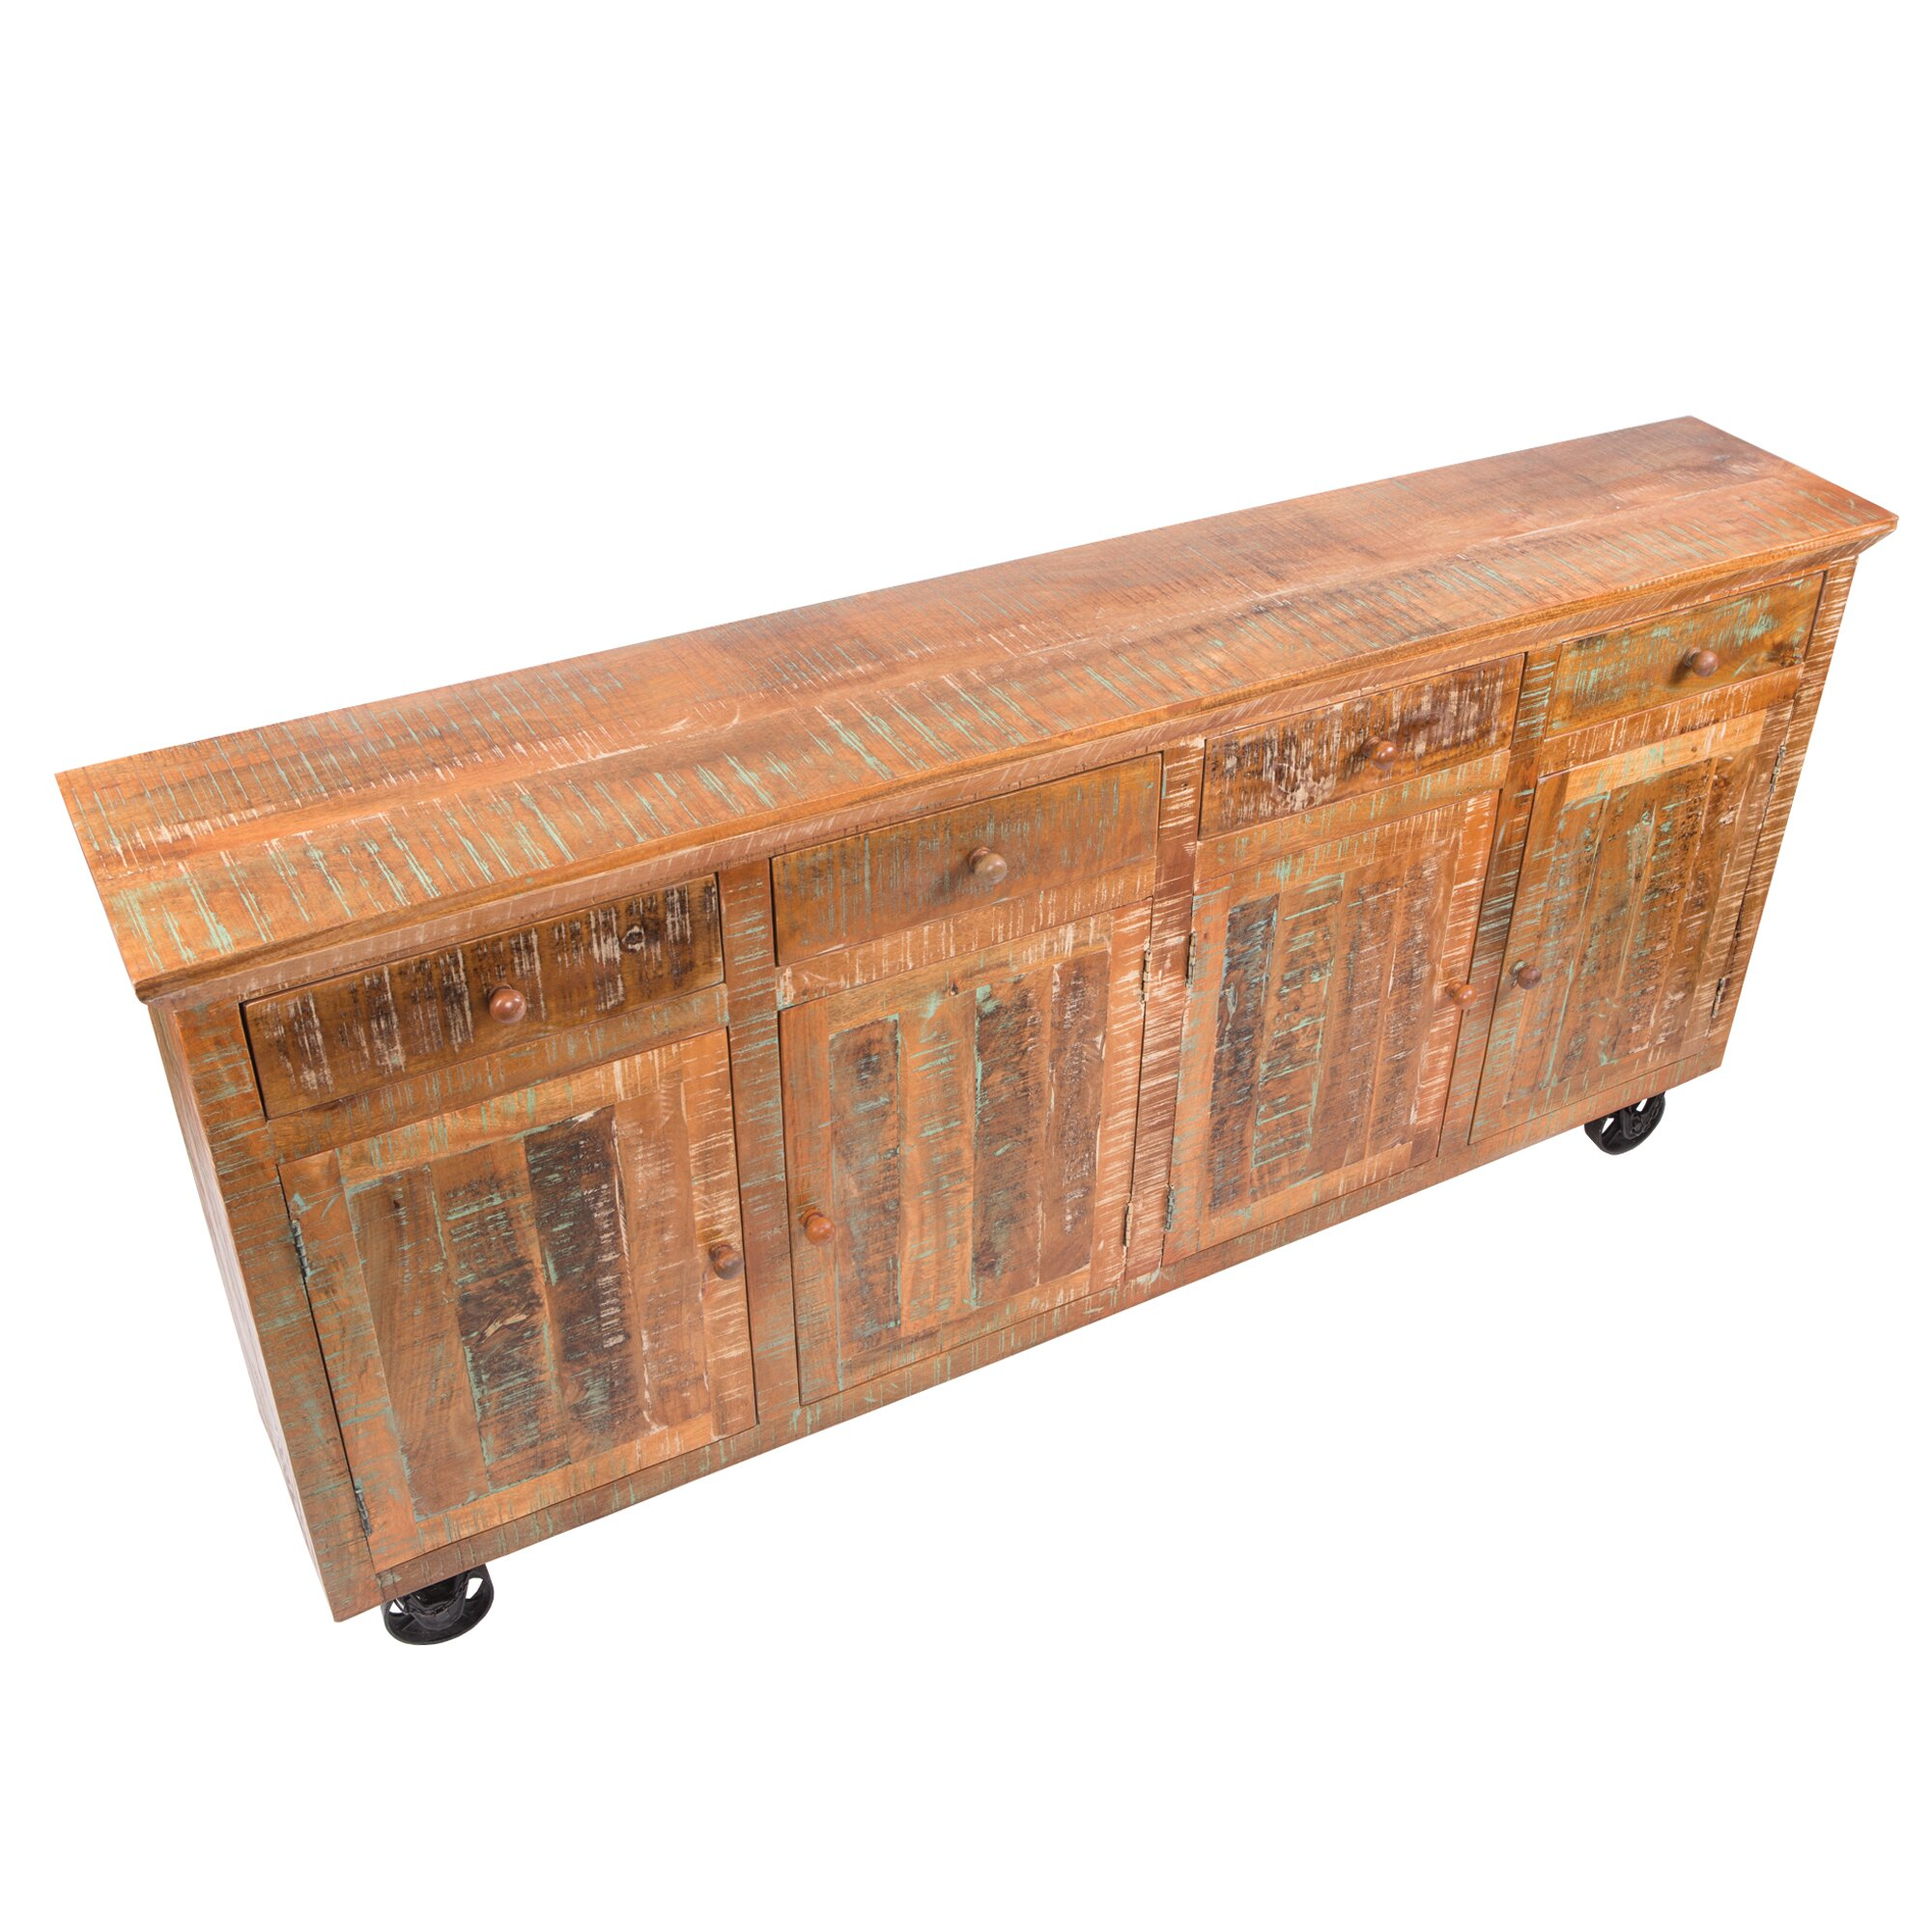 Yosemite home decor yosemite home decor furniture cabinet Home n decor furniture